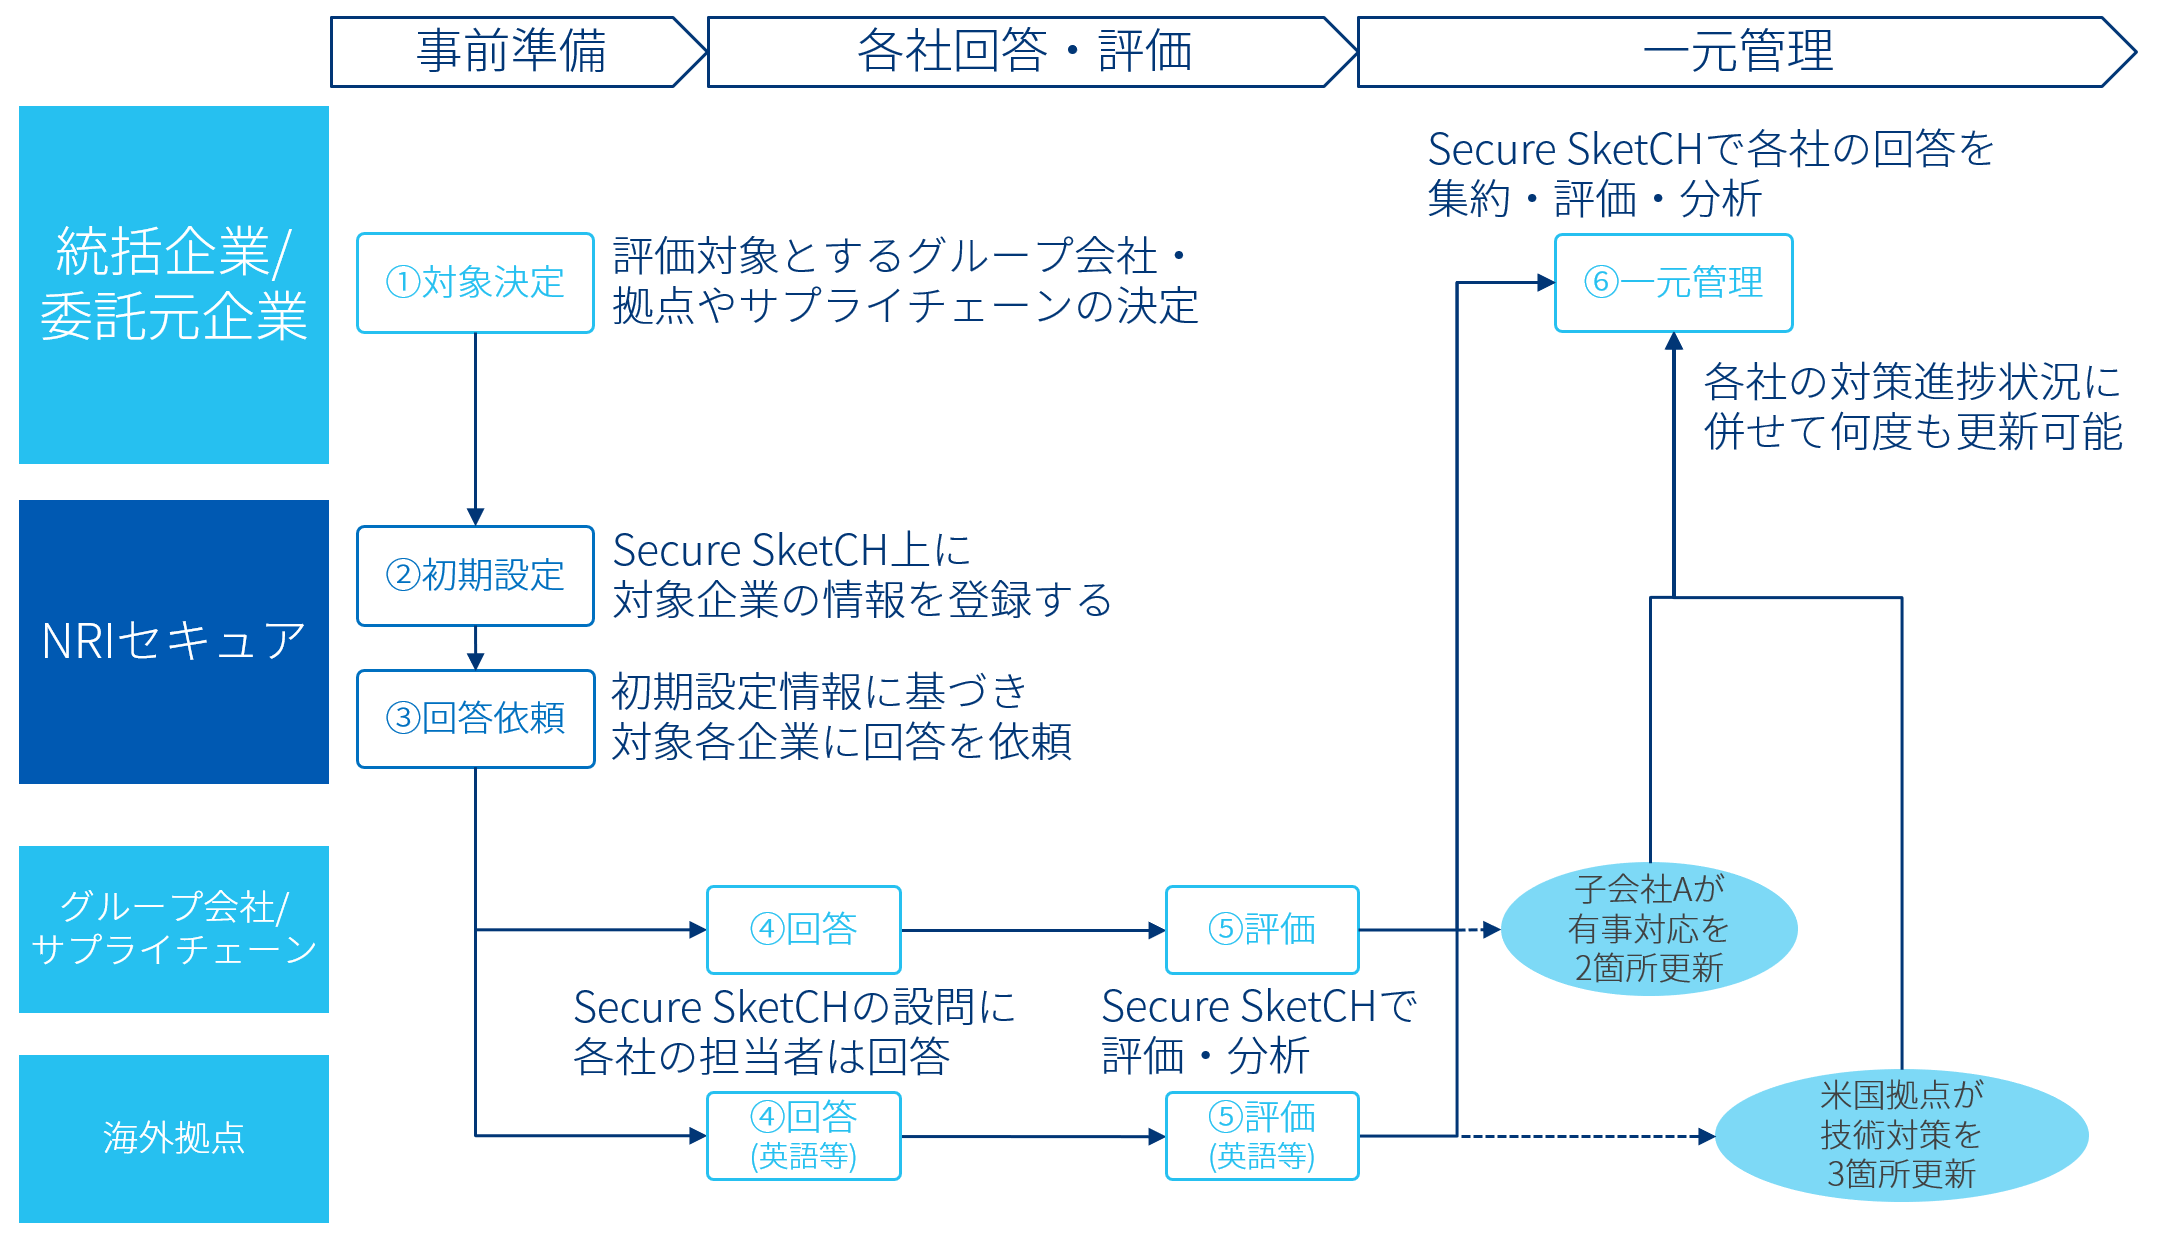 「Secure SketCH GROUPS」利用の流れ_v2